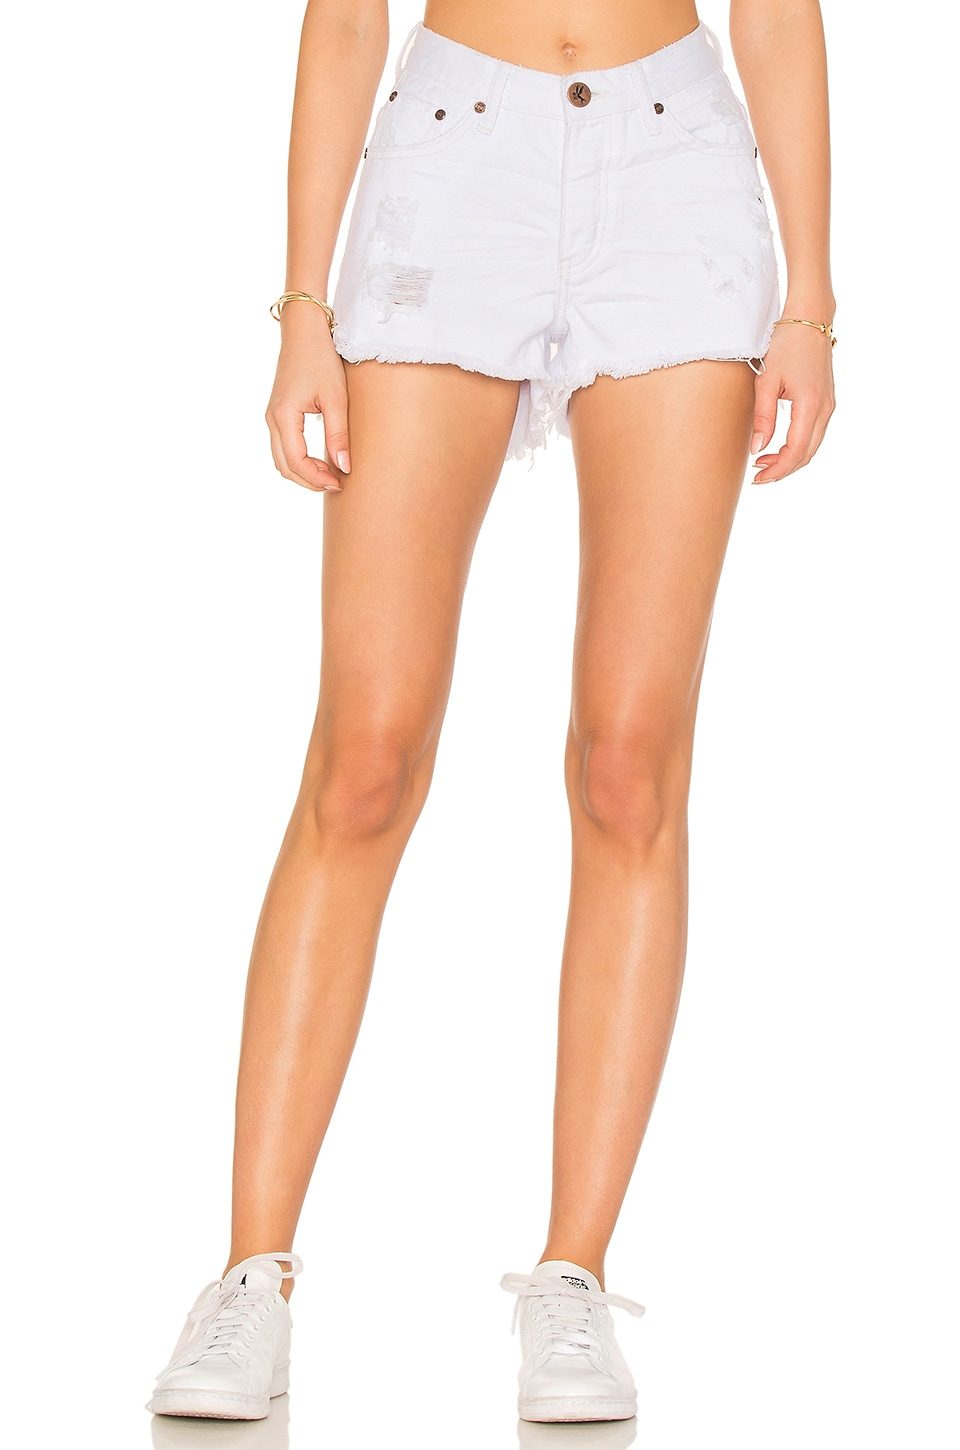 One Teaspoon High Waist Bonitas Short in White Beauty